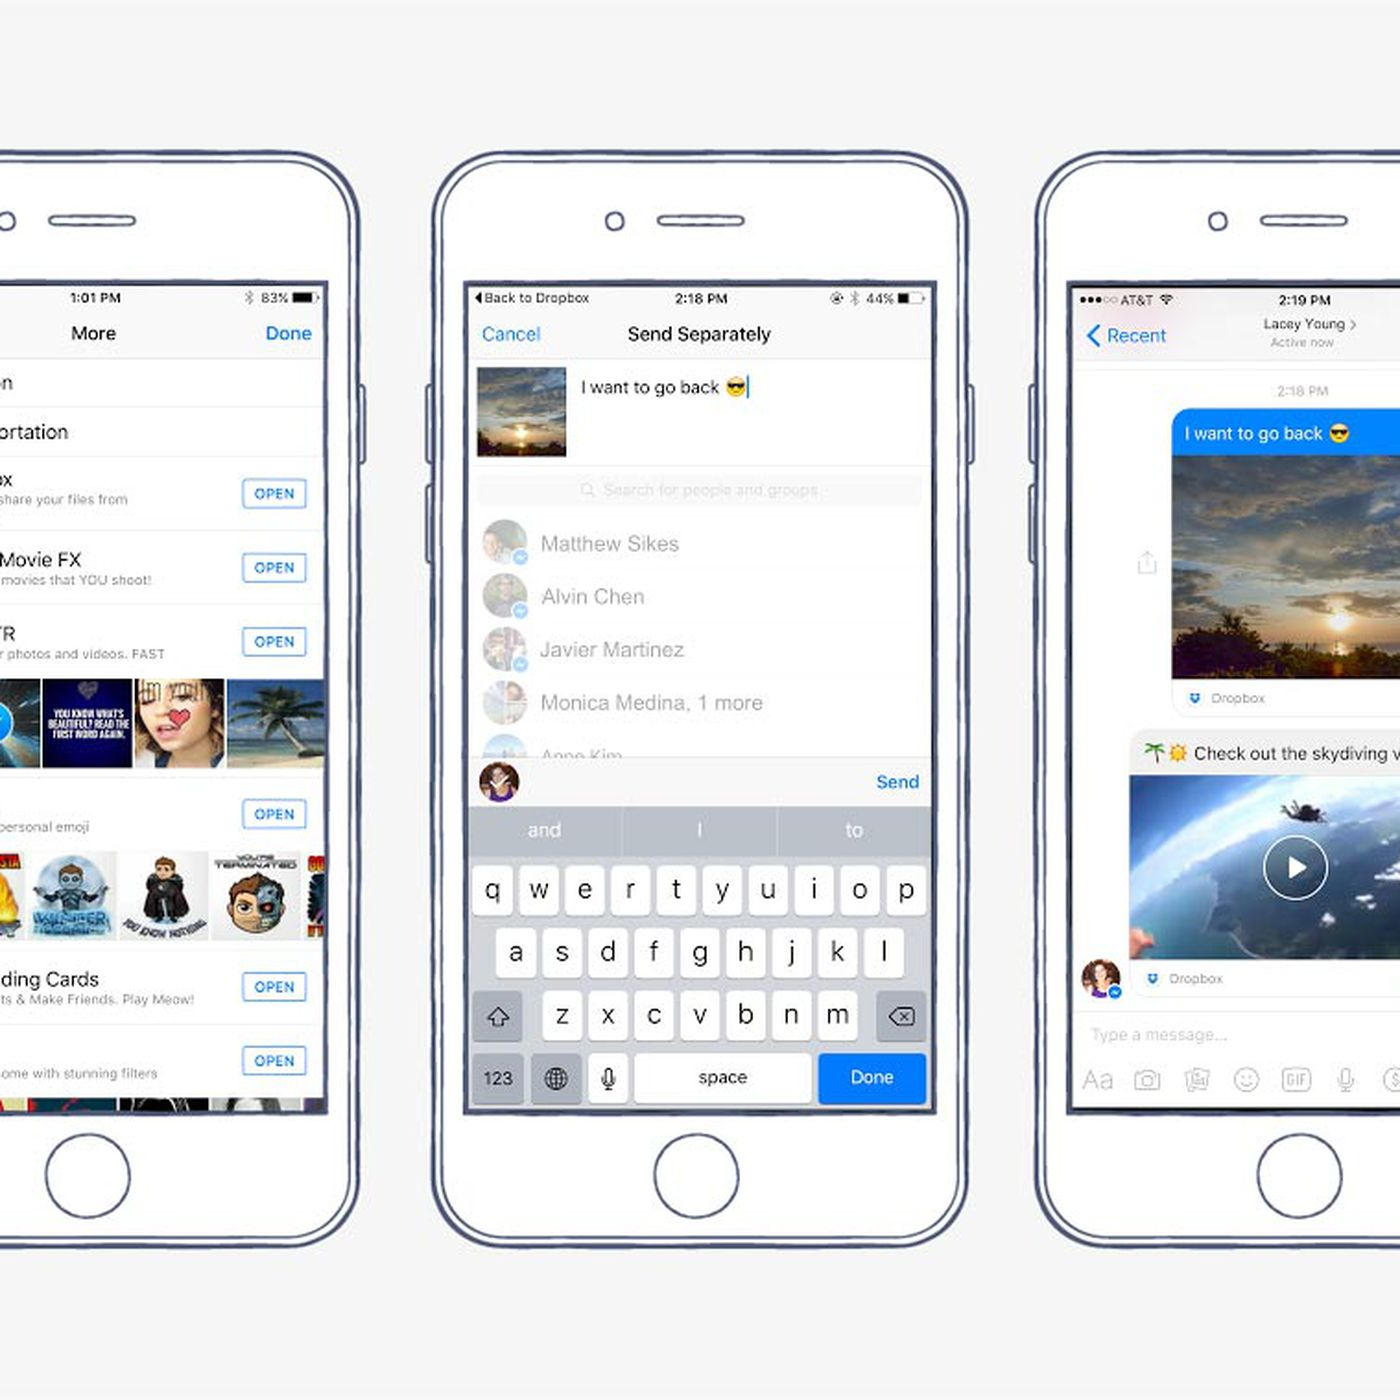 Facebook Messenger can now send and preview Dropbox files - The Verge